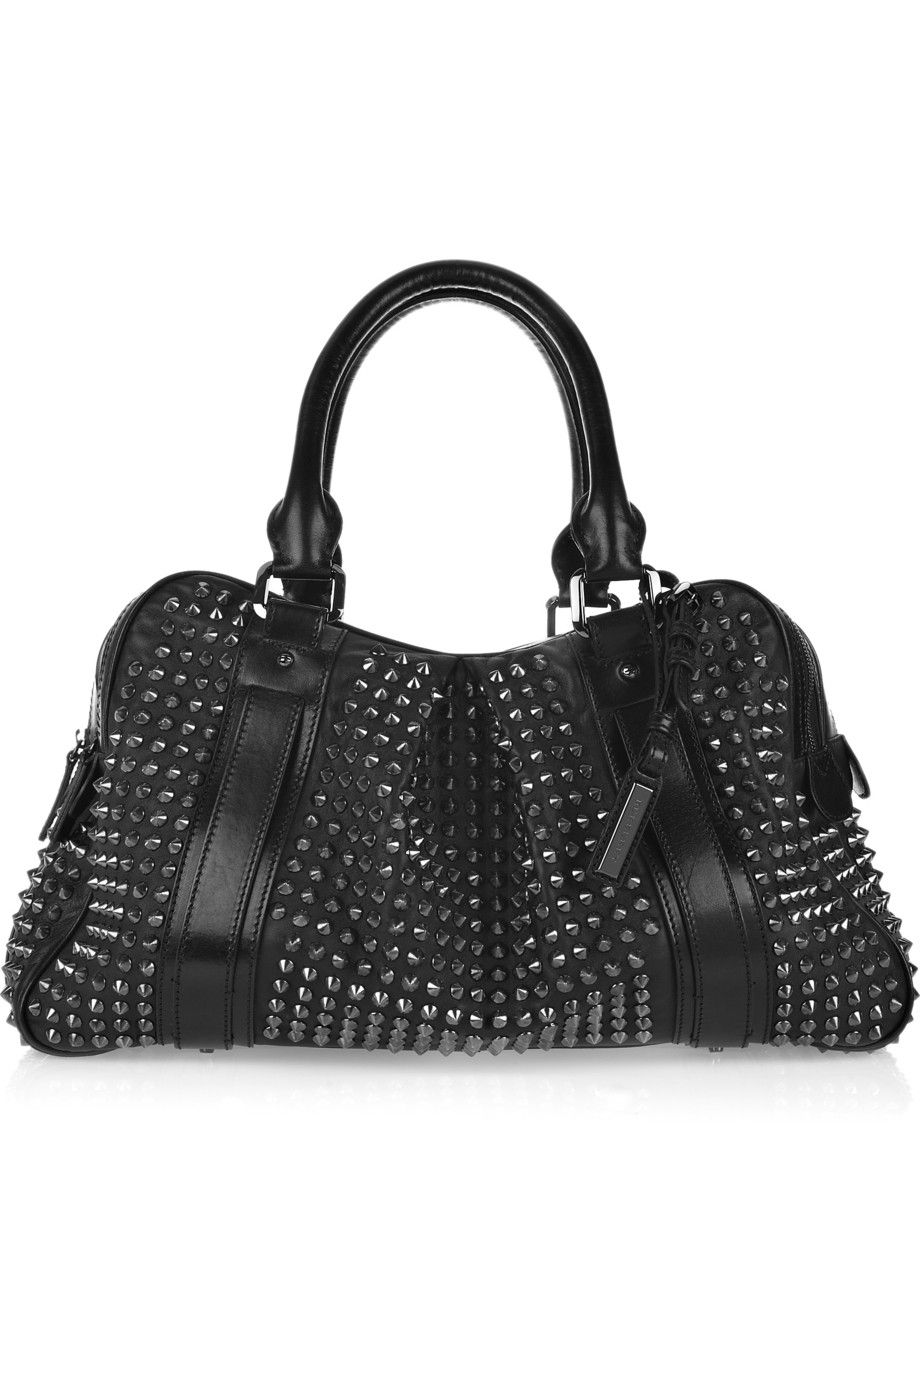 bf03b9e5ecc2 OMG! Burberry s studded black leather travel bag. A Girl Can Dream ...